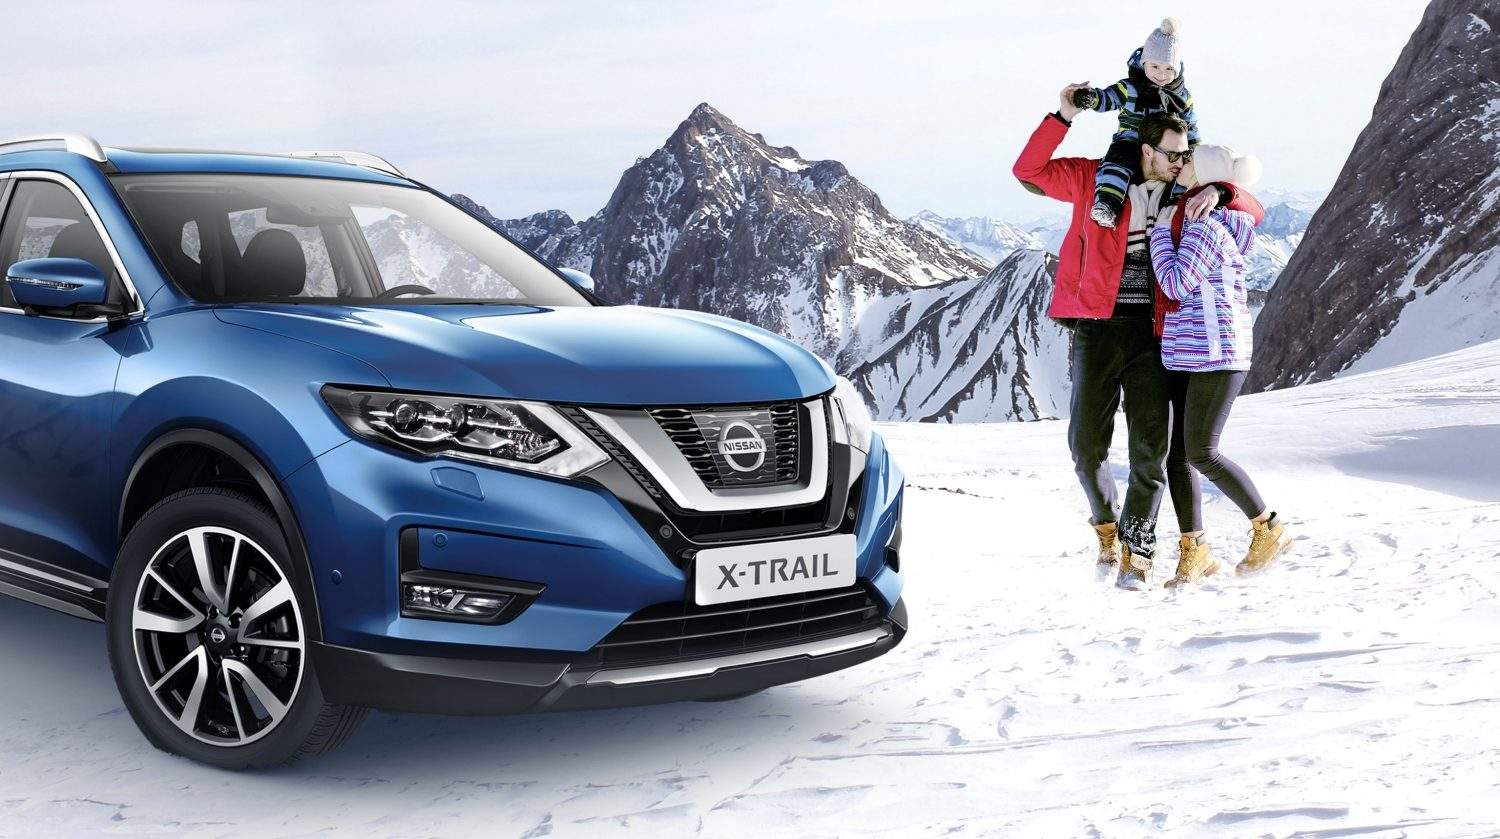 Campagne d'hiver Nissan